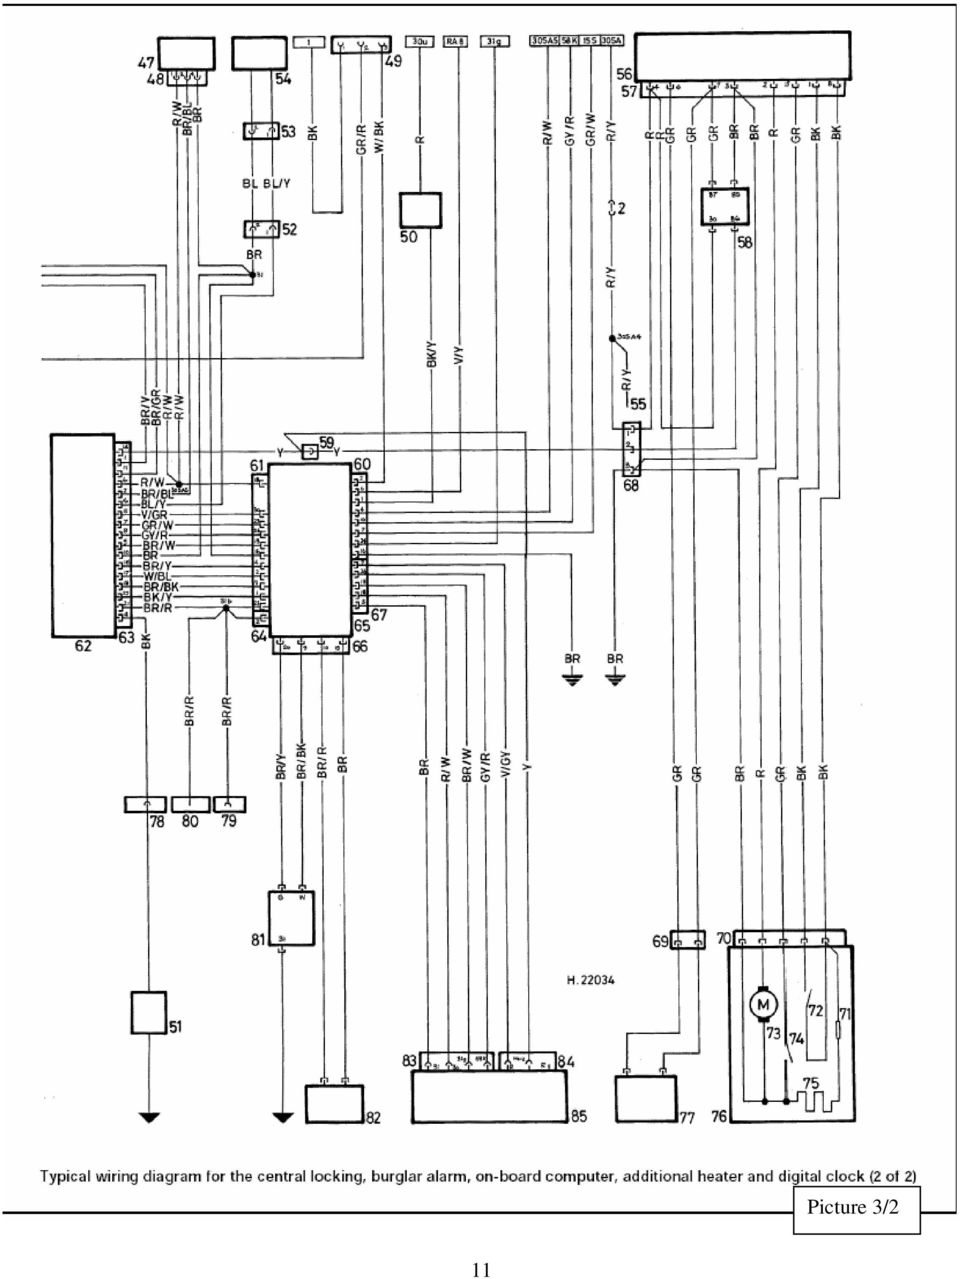 Computer Wiring Diagram 2001 Monte Carlo Ss Engine For Amp Diagrams Index Pdf On